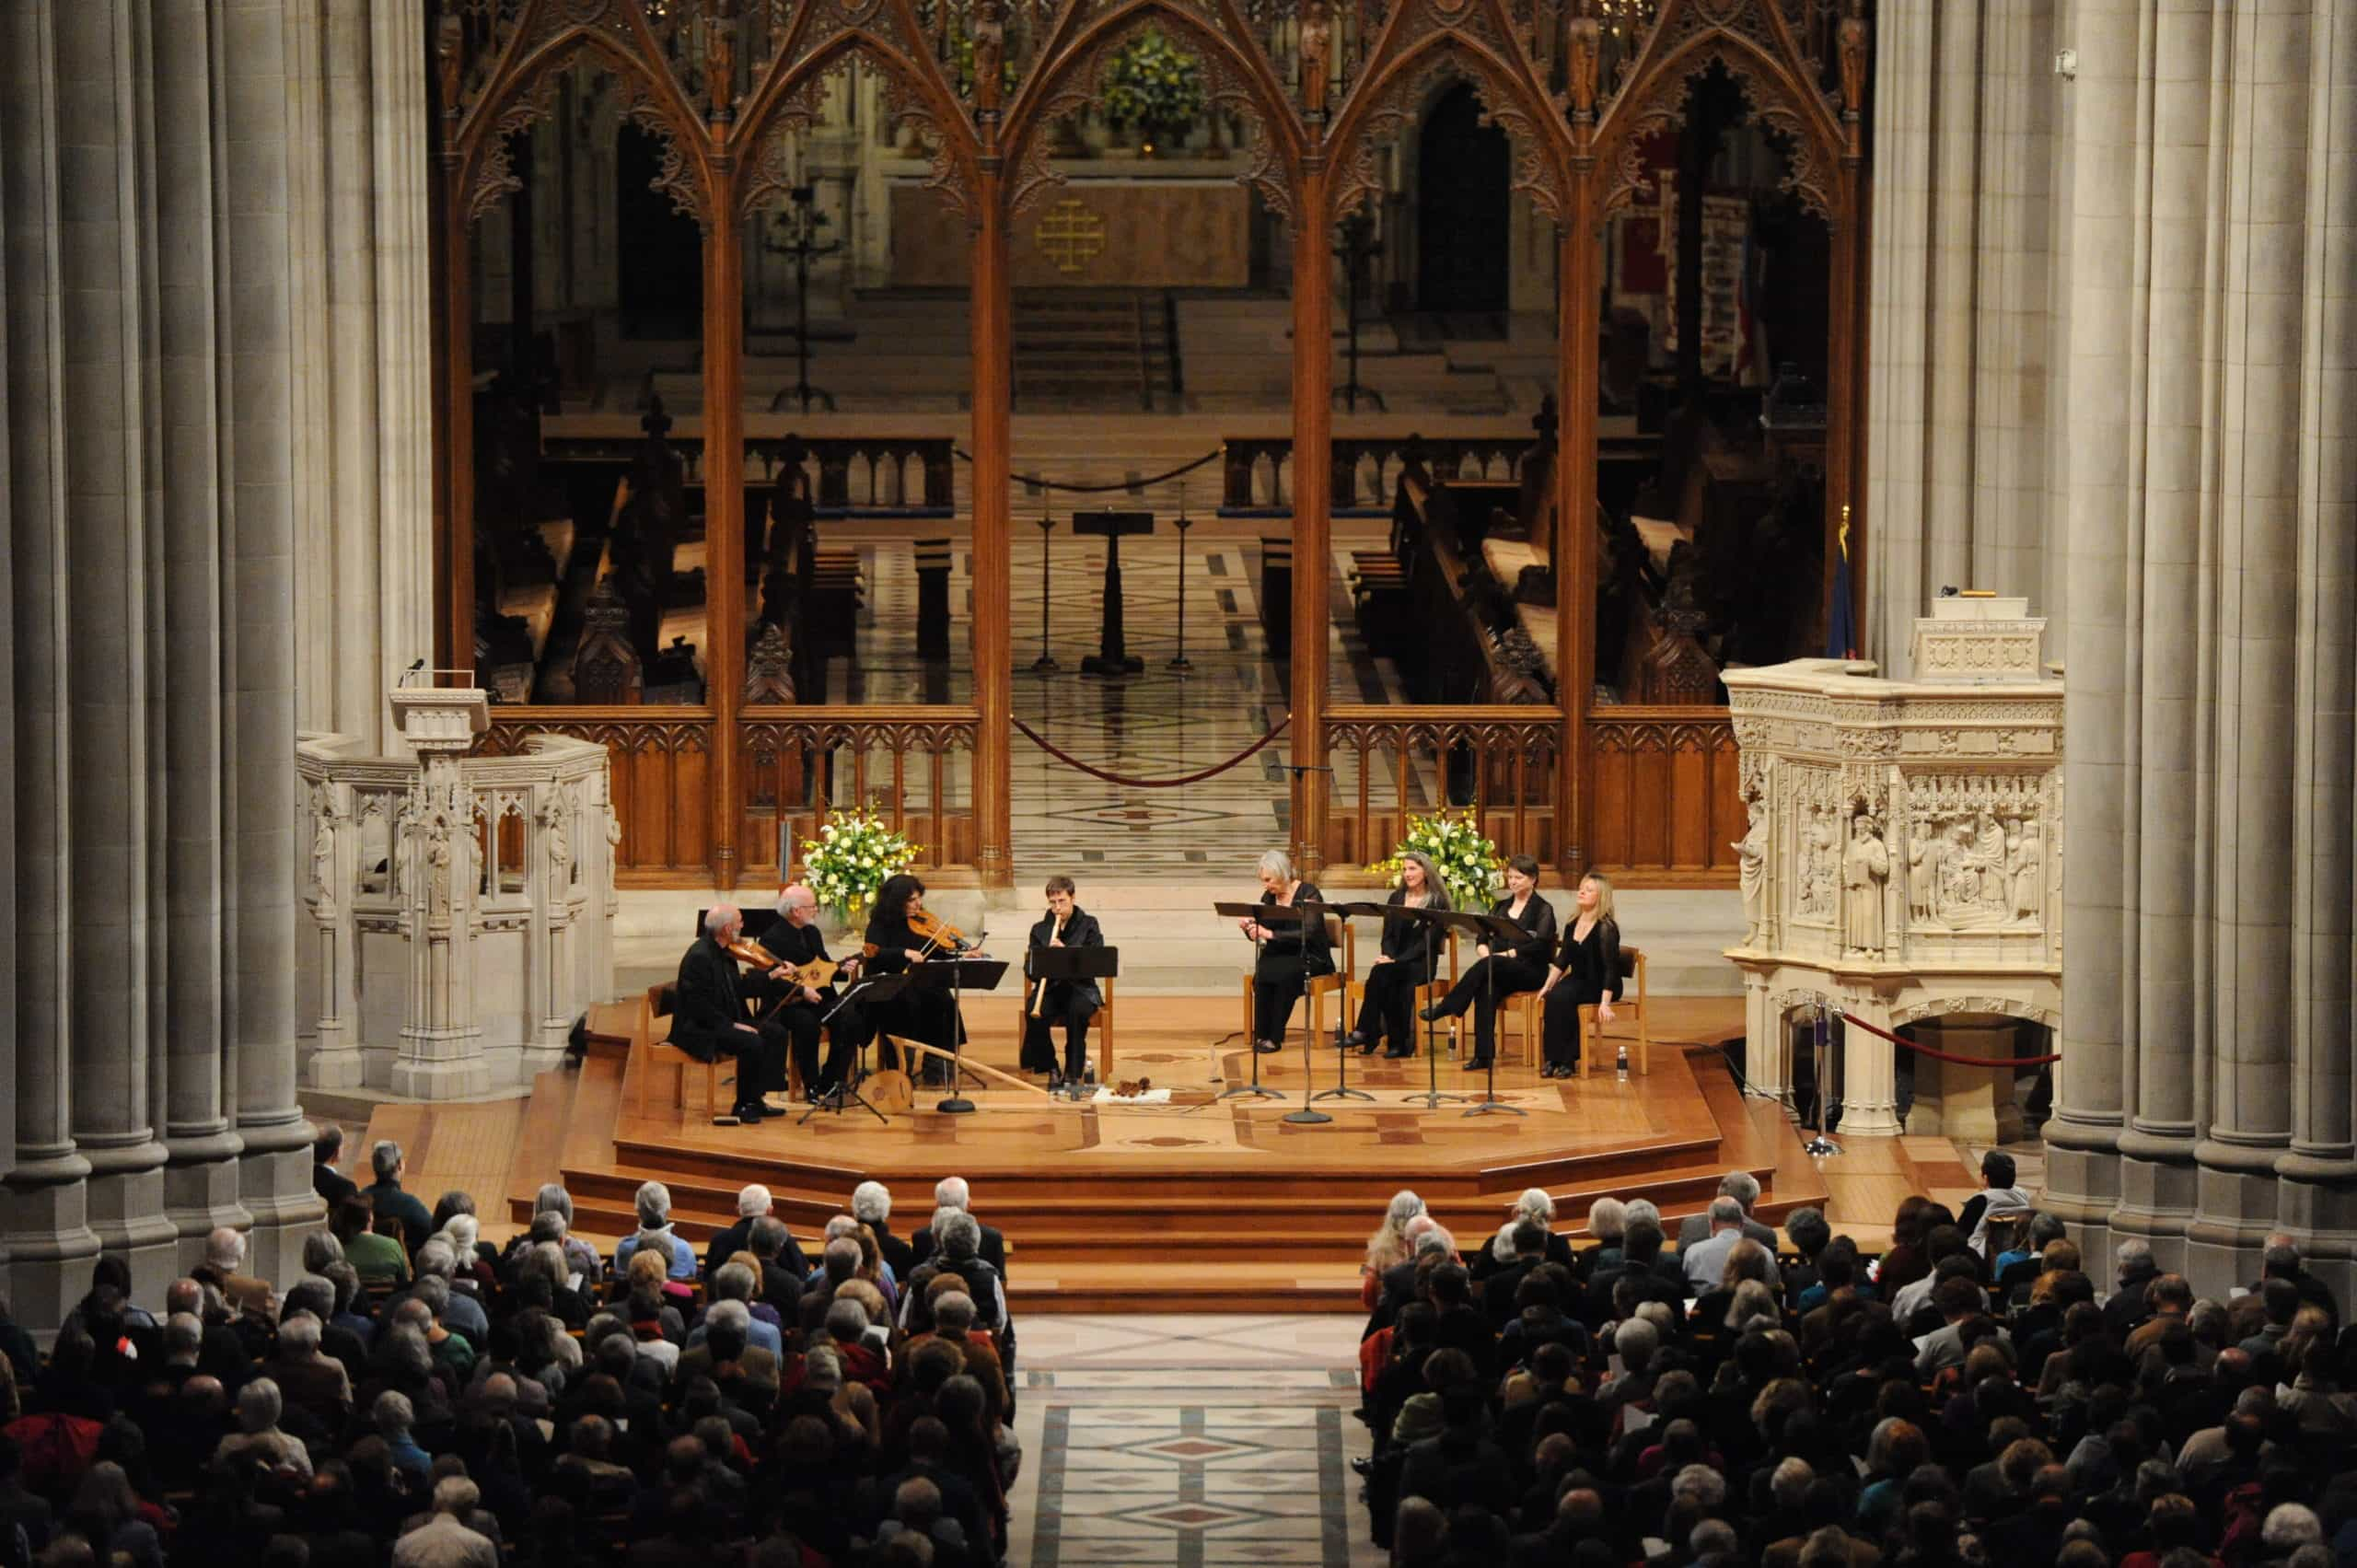 Folger Consort performs at the Washington National Cathedral. Photo courtesy of Folger Consort.